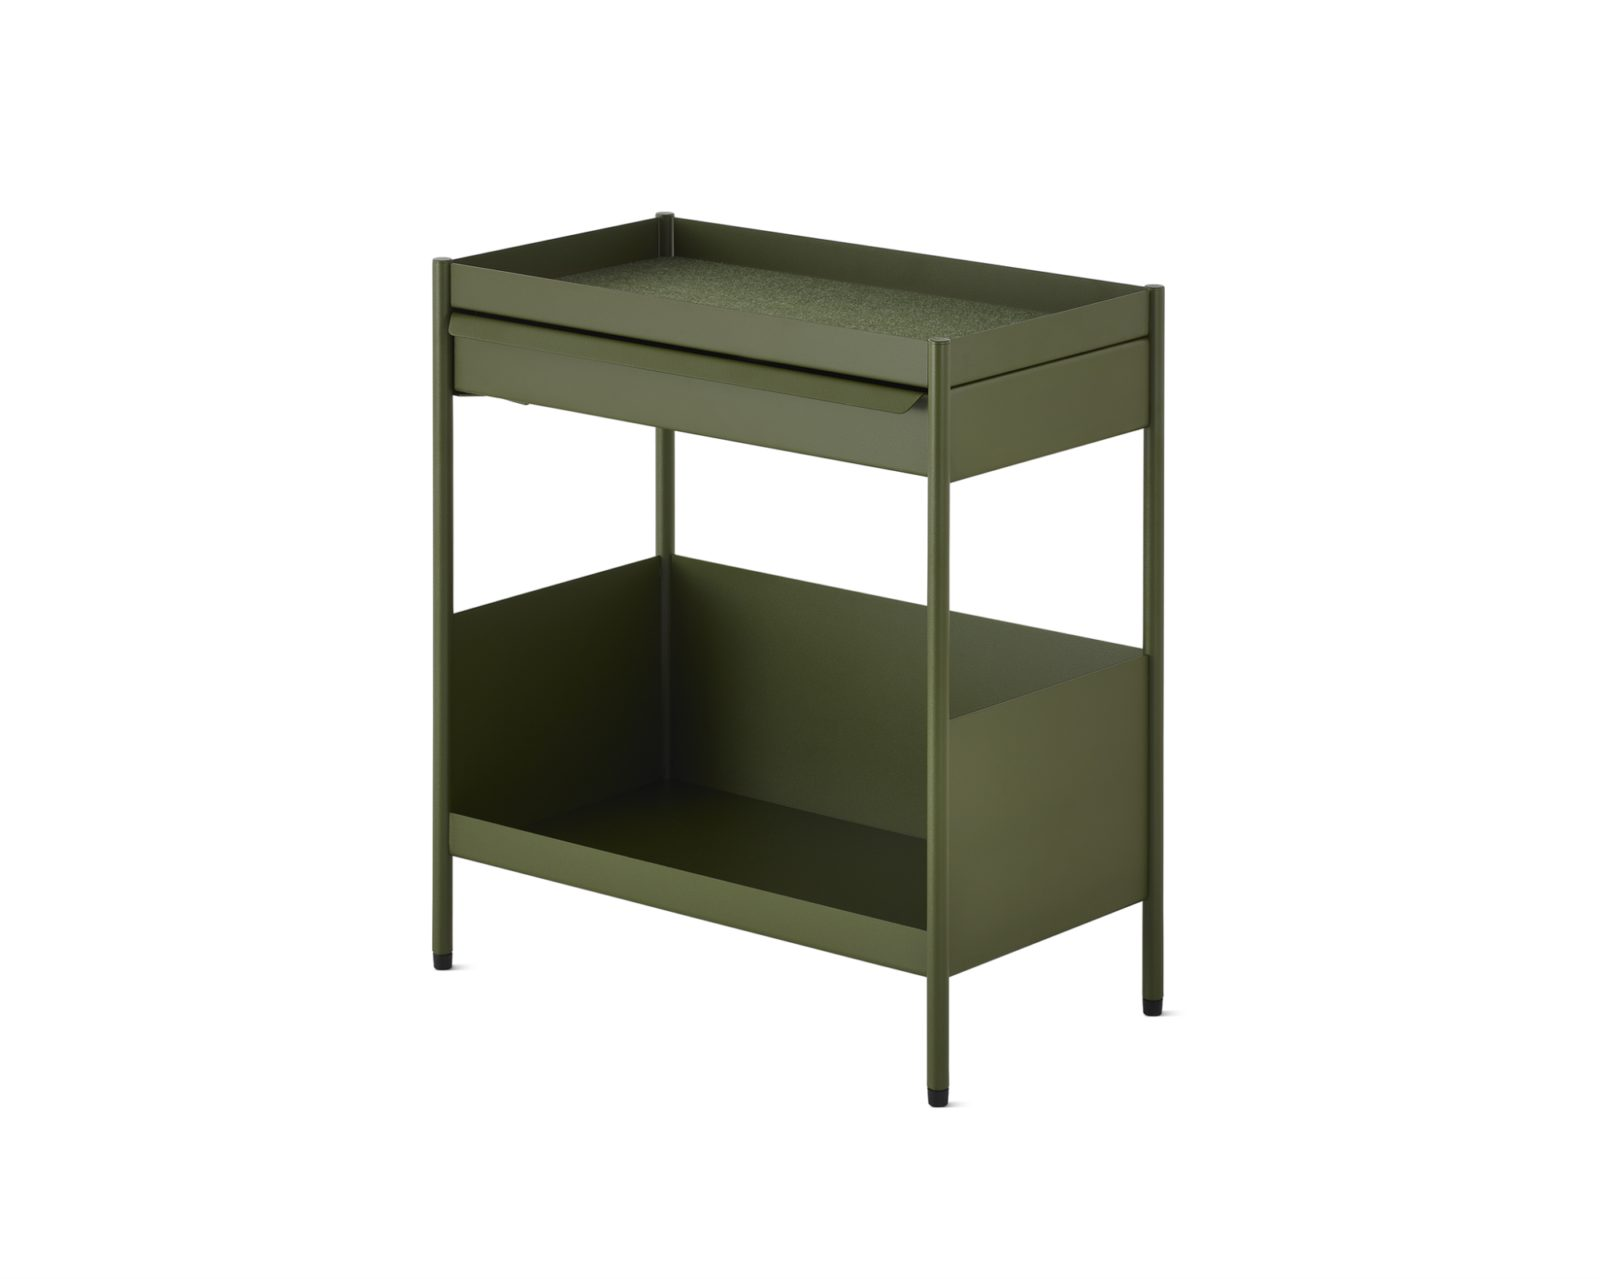 A green individual Storage Trolley with an open top with one small drawer beneath it and a large open shelf on the bottom.